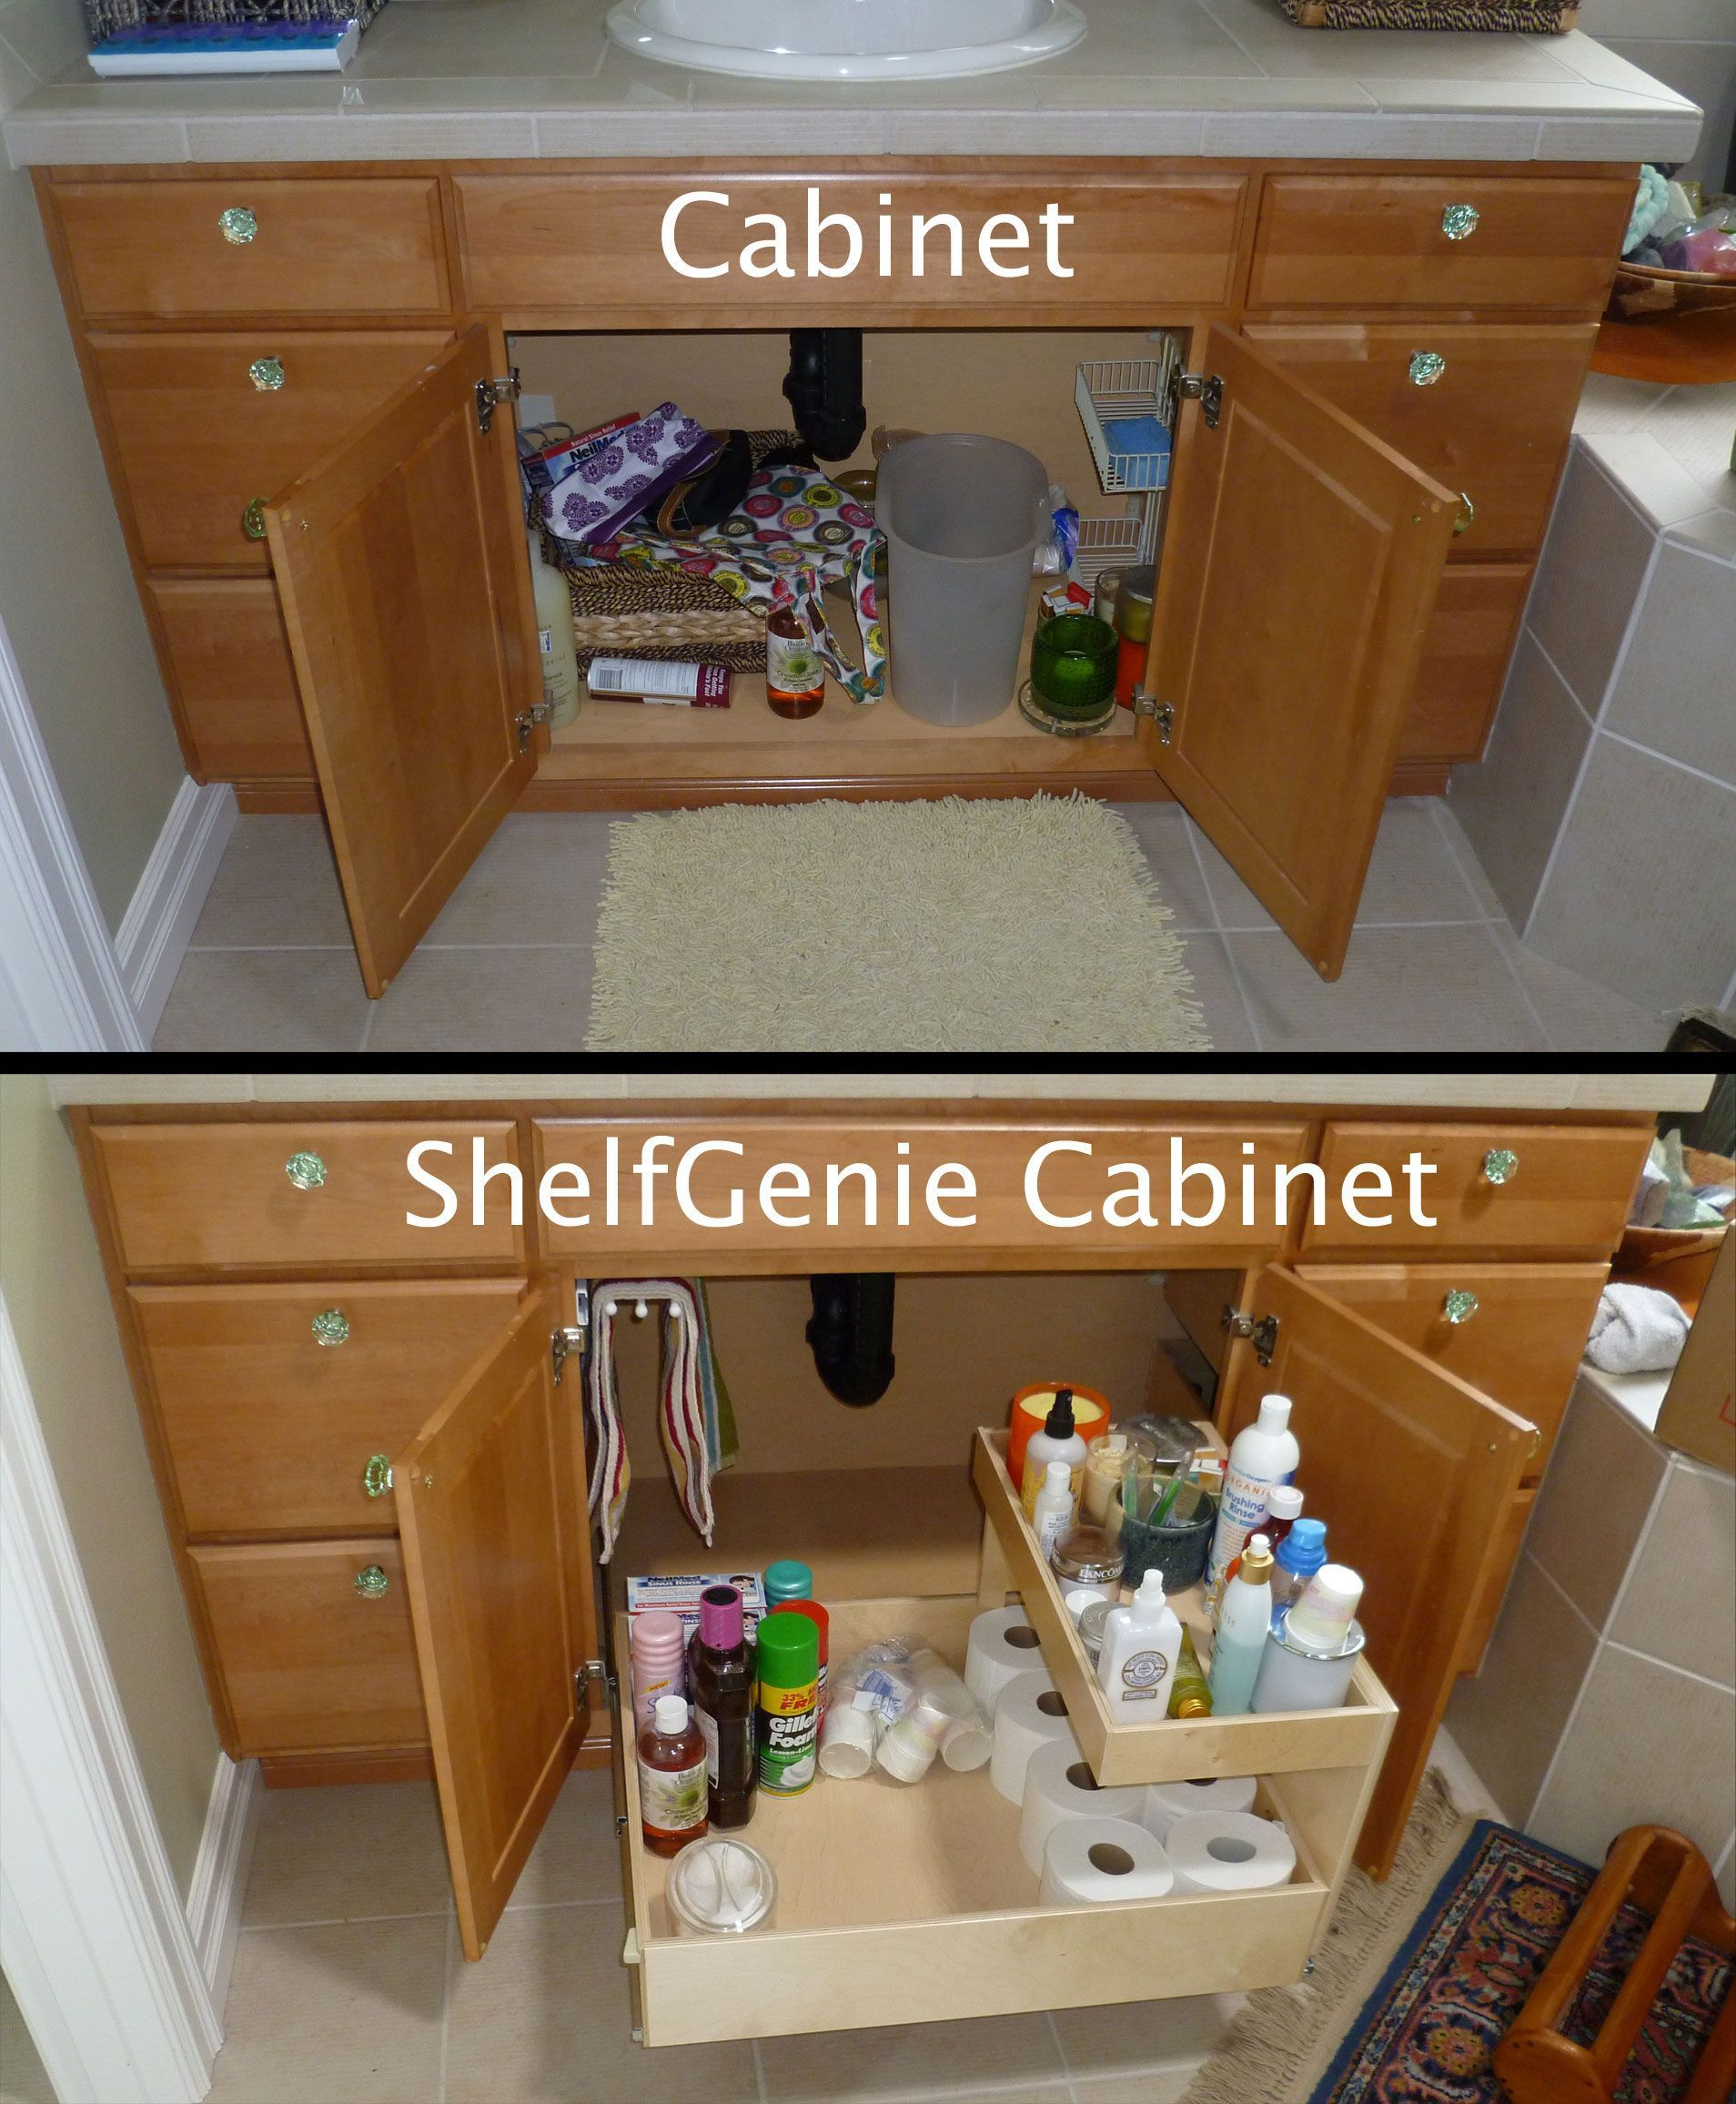 15 Bathroom Cabinet Storage Ideas And Tips Optimize Your Bathroom Bathroom Sink Storage Kitchen Cabinet Storage Bathroom Storage Solutions